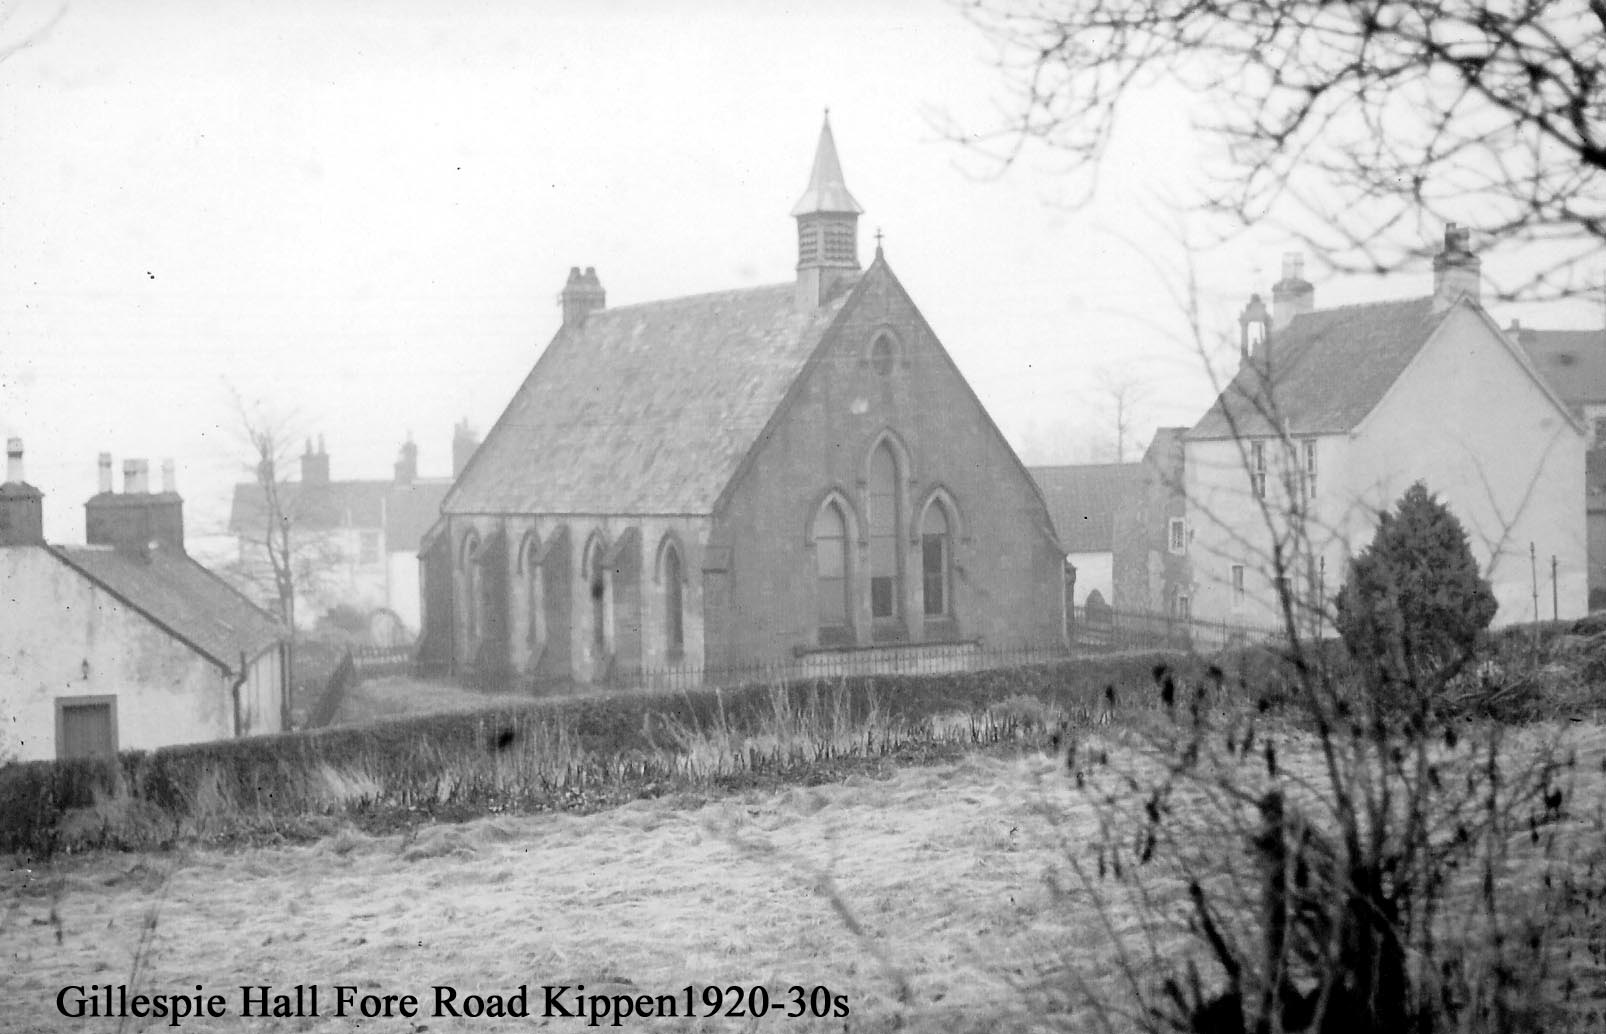 Gillespie Hall Fore Road Kippen 1920-30s